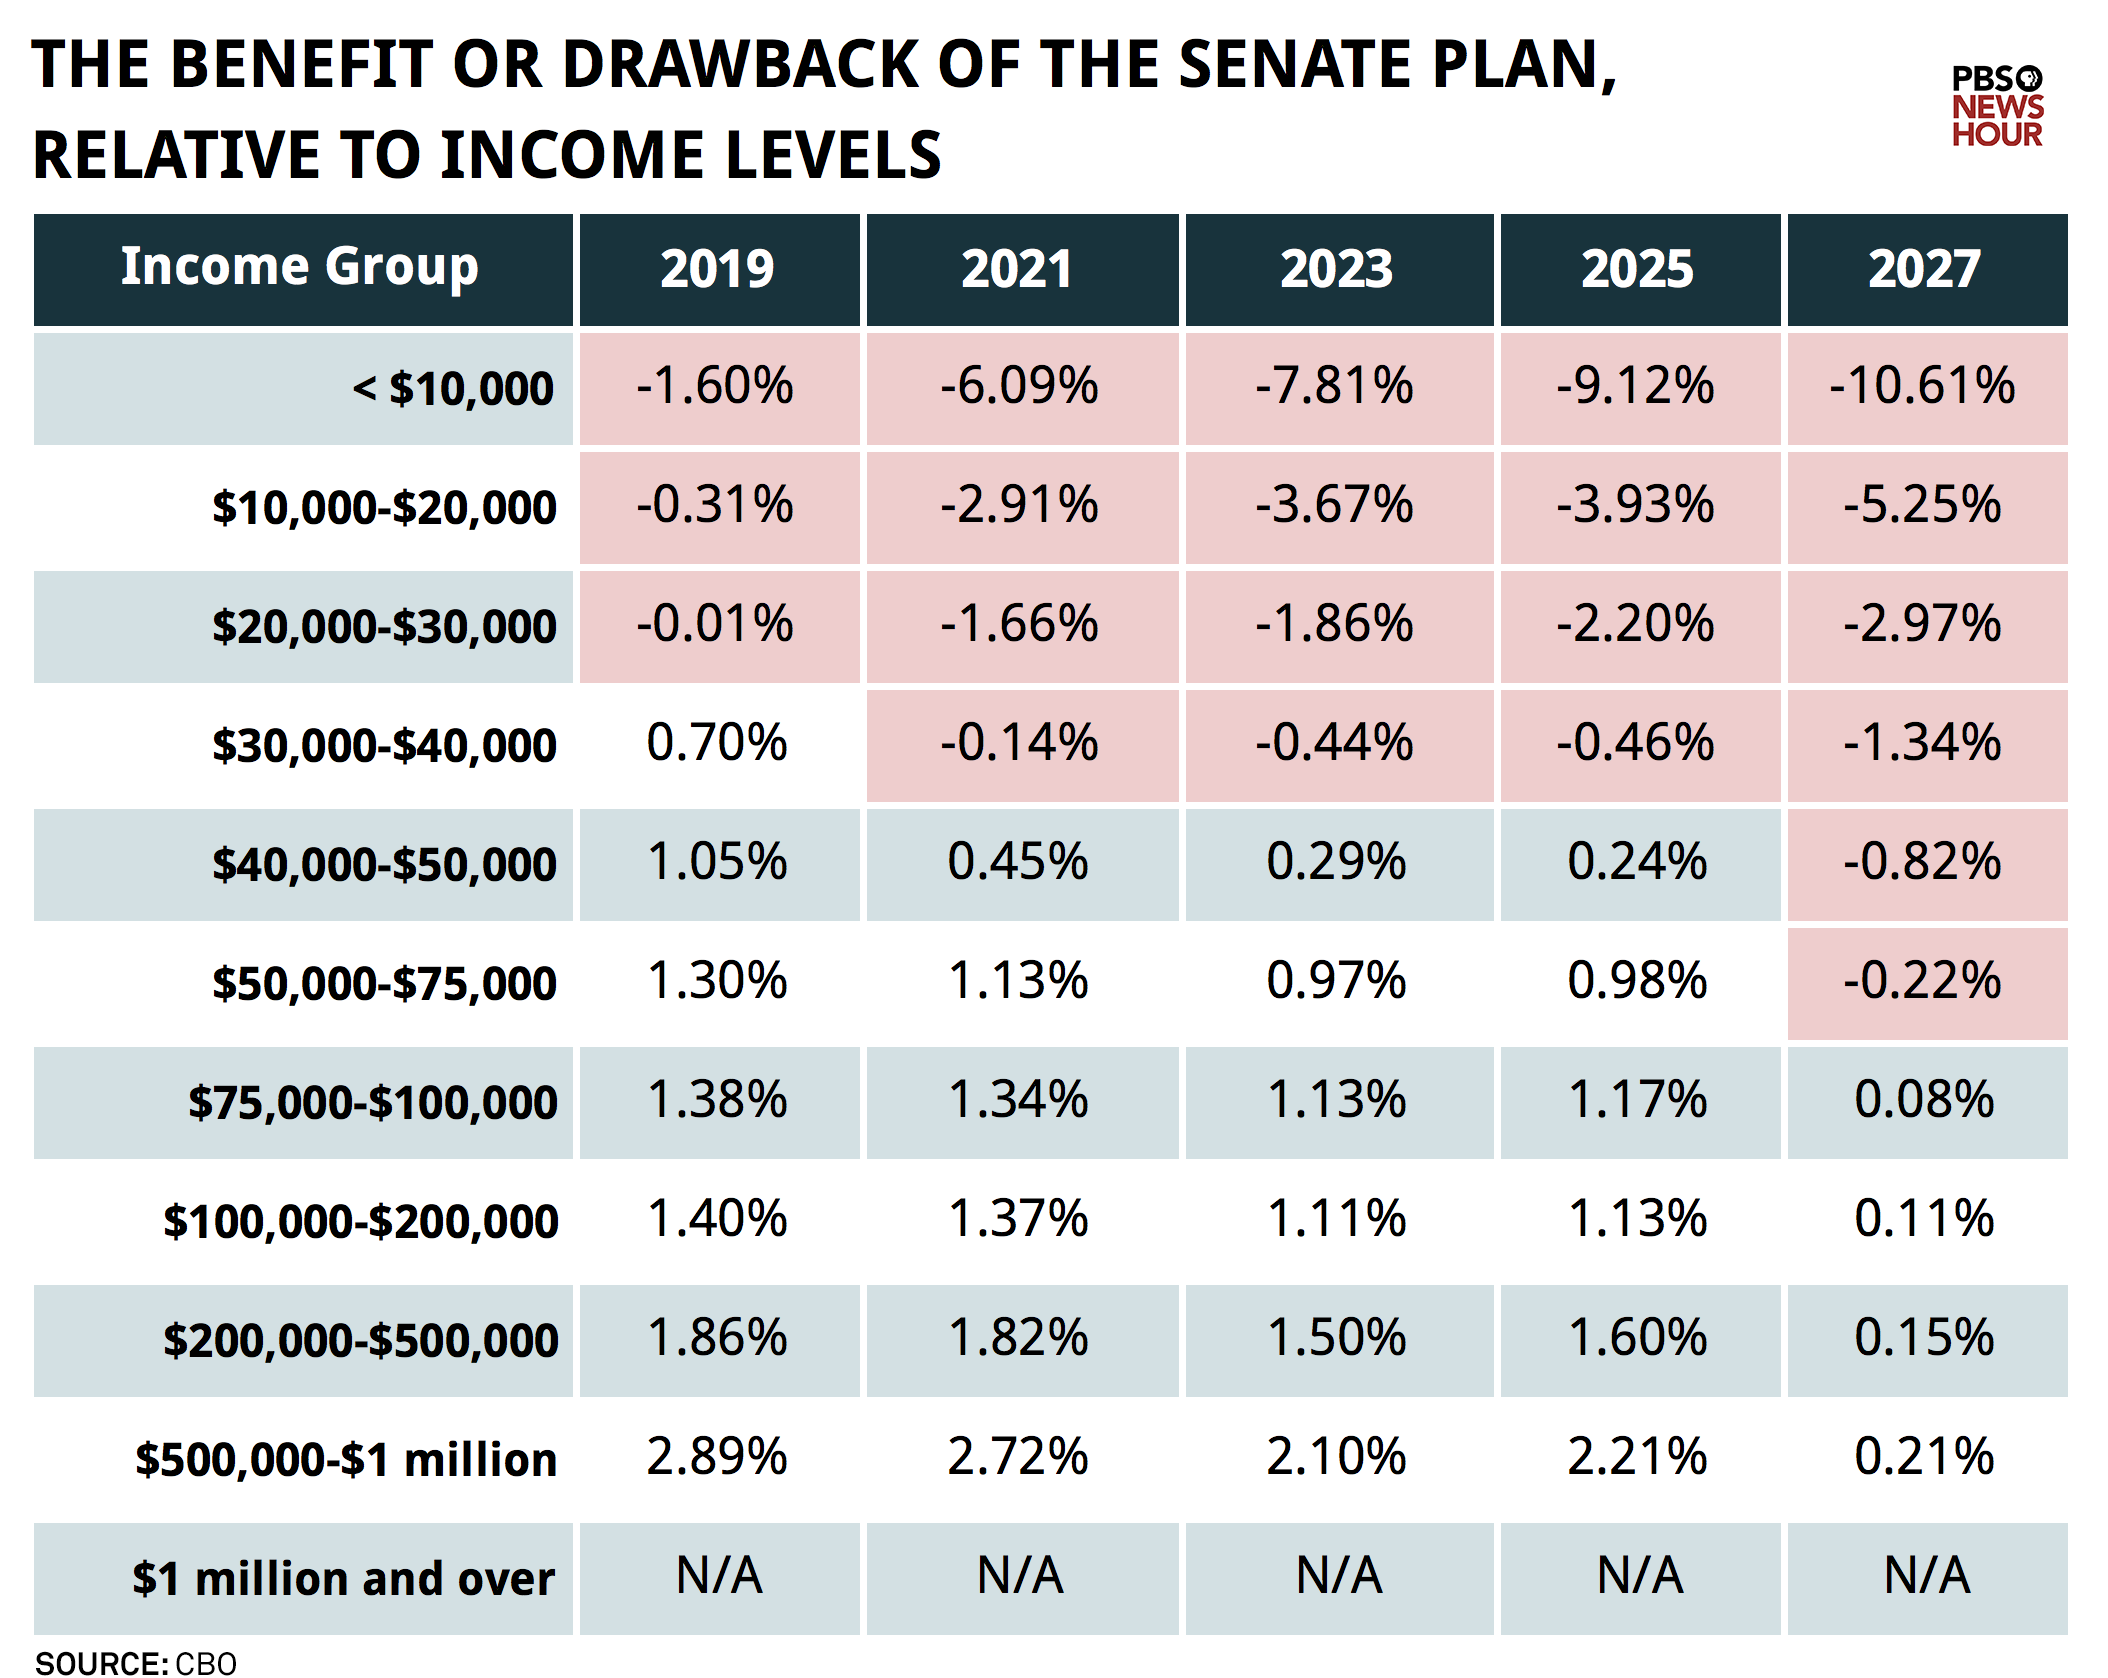 The benefit or drawback of the senate plan relative to income levels (chart)